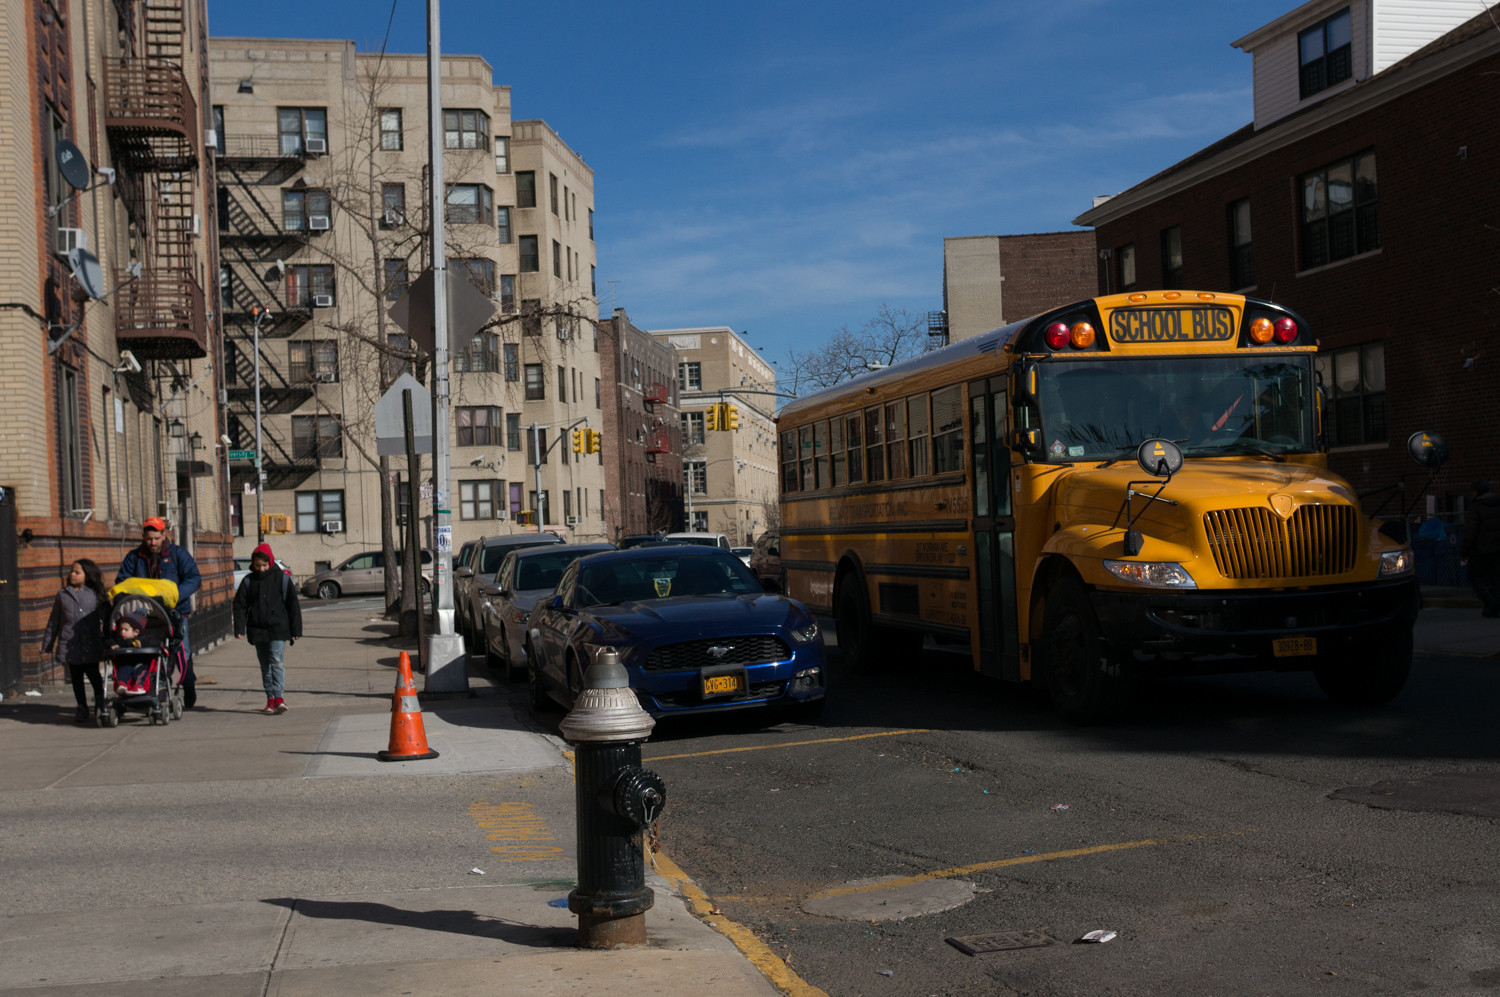 A school bus works its way along West 197th Street in Kingsbridge Heights. Community Board 8 is pushing to have the area downzones as a way to hamper real estate developers from build high-density residential complexes.